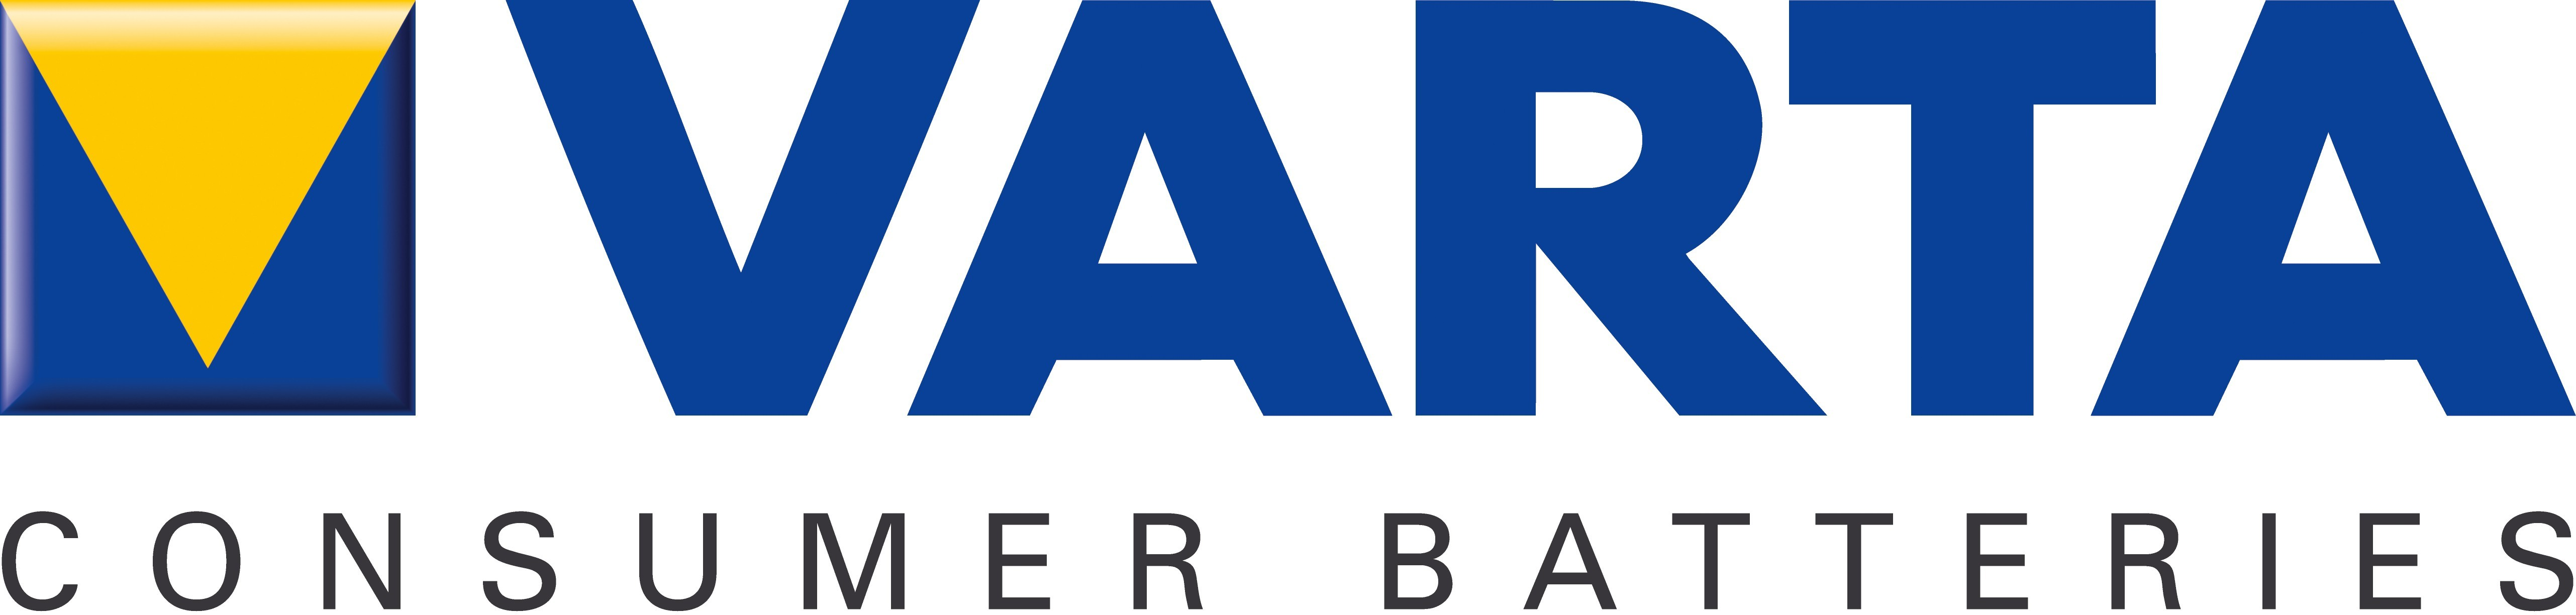 Varta Consumer Batteries